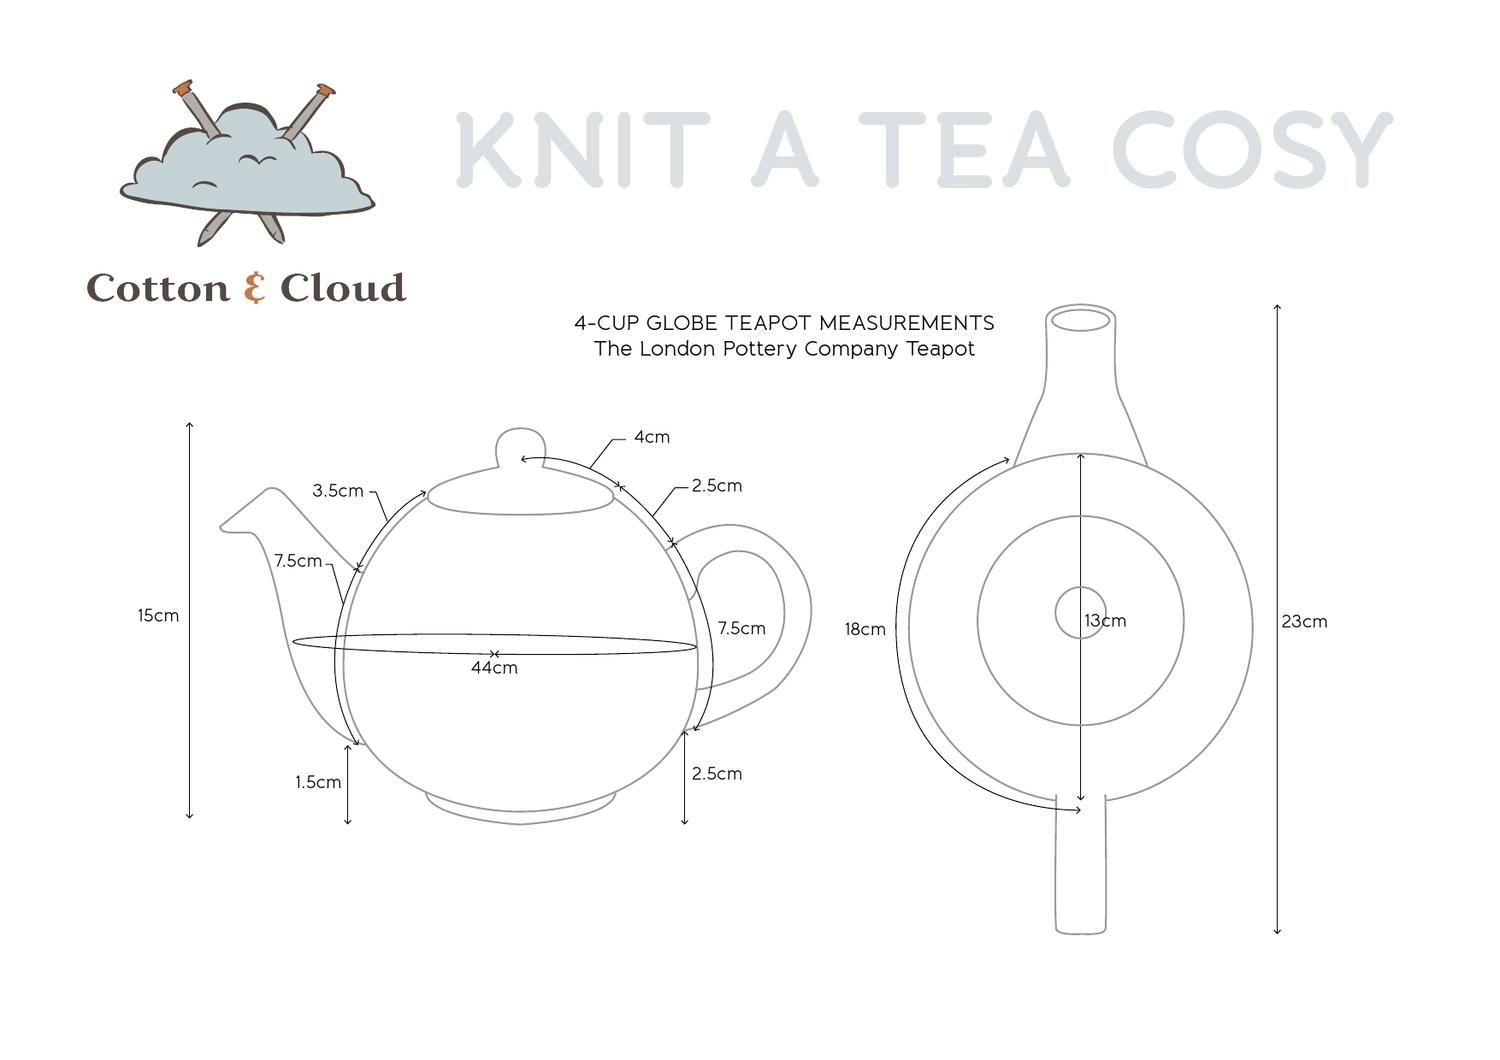 4cup Teapot Dimensions Tea pots, Knitting for charity